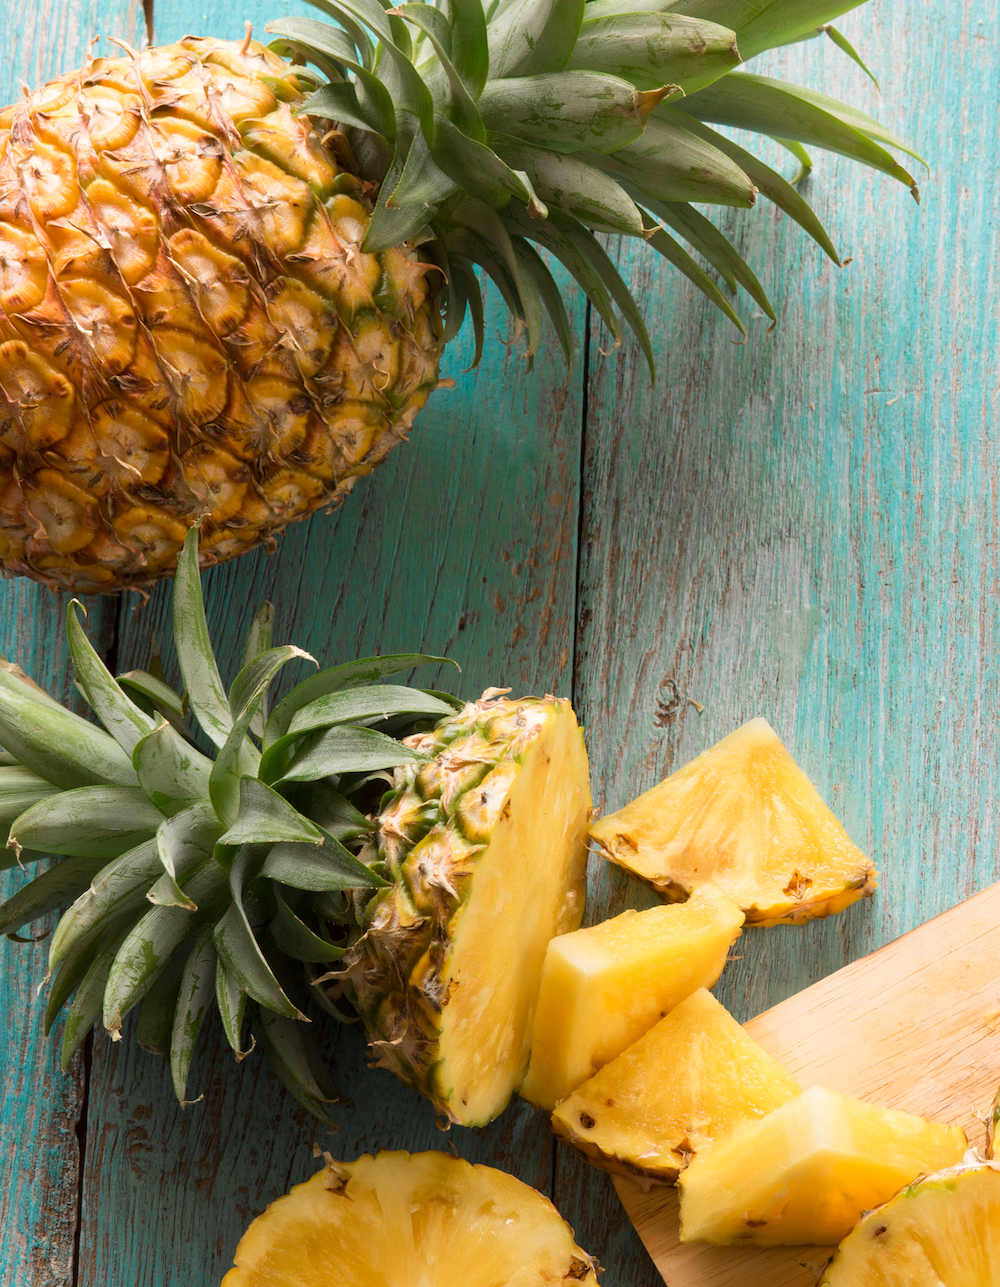 Pineapple With Slices On Table